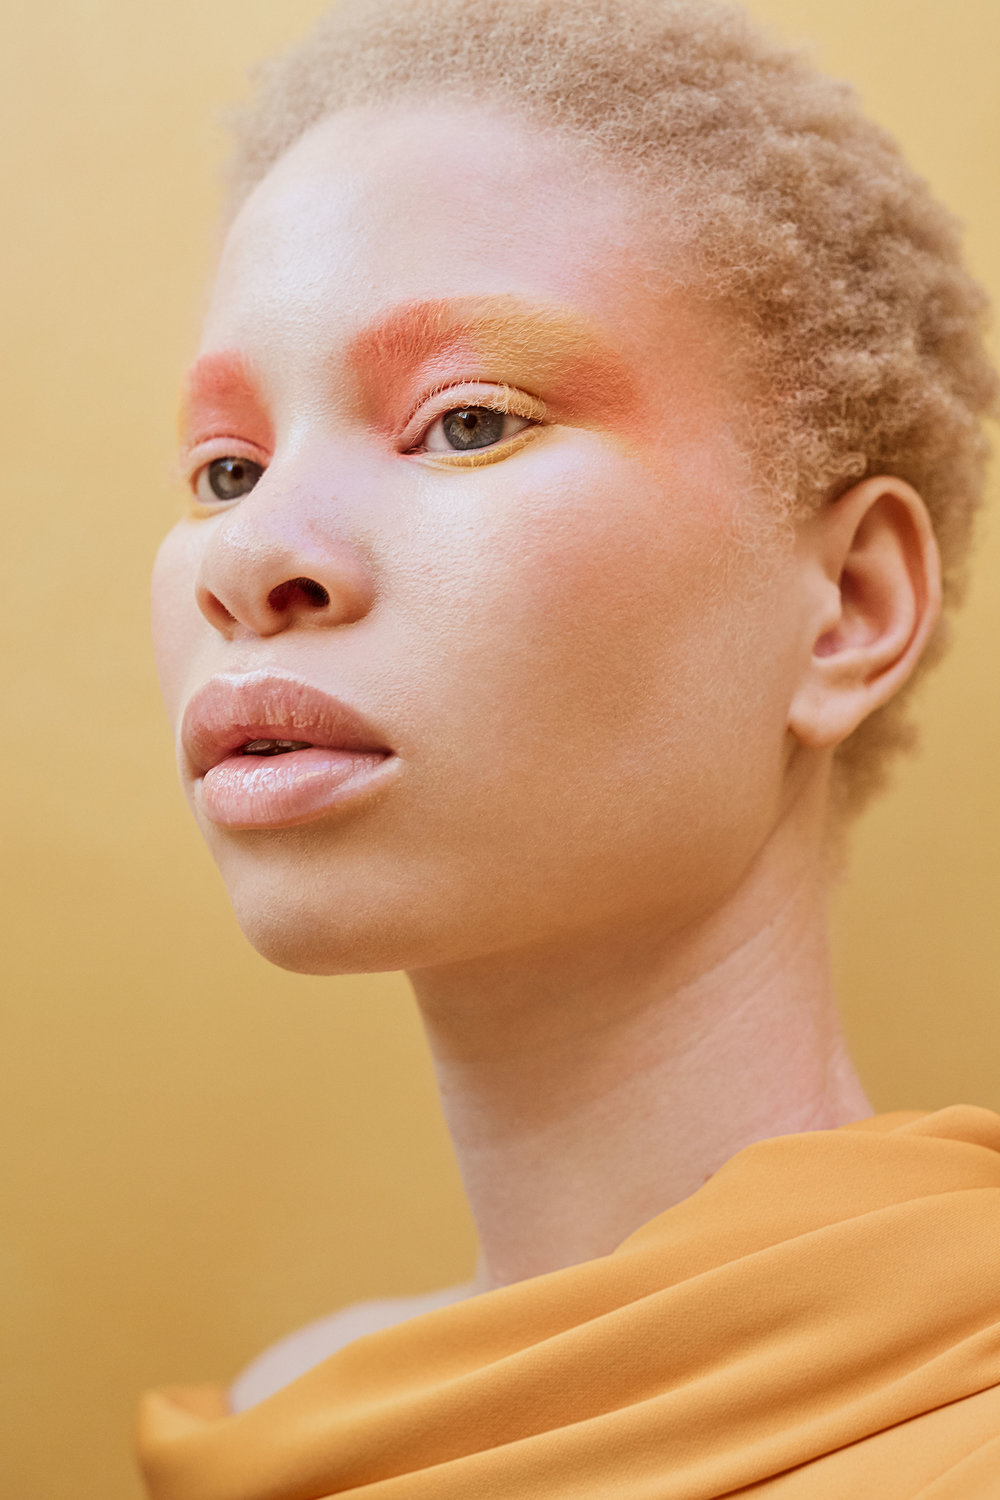 African Albino Beauty Editorial -10.jpg